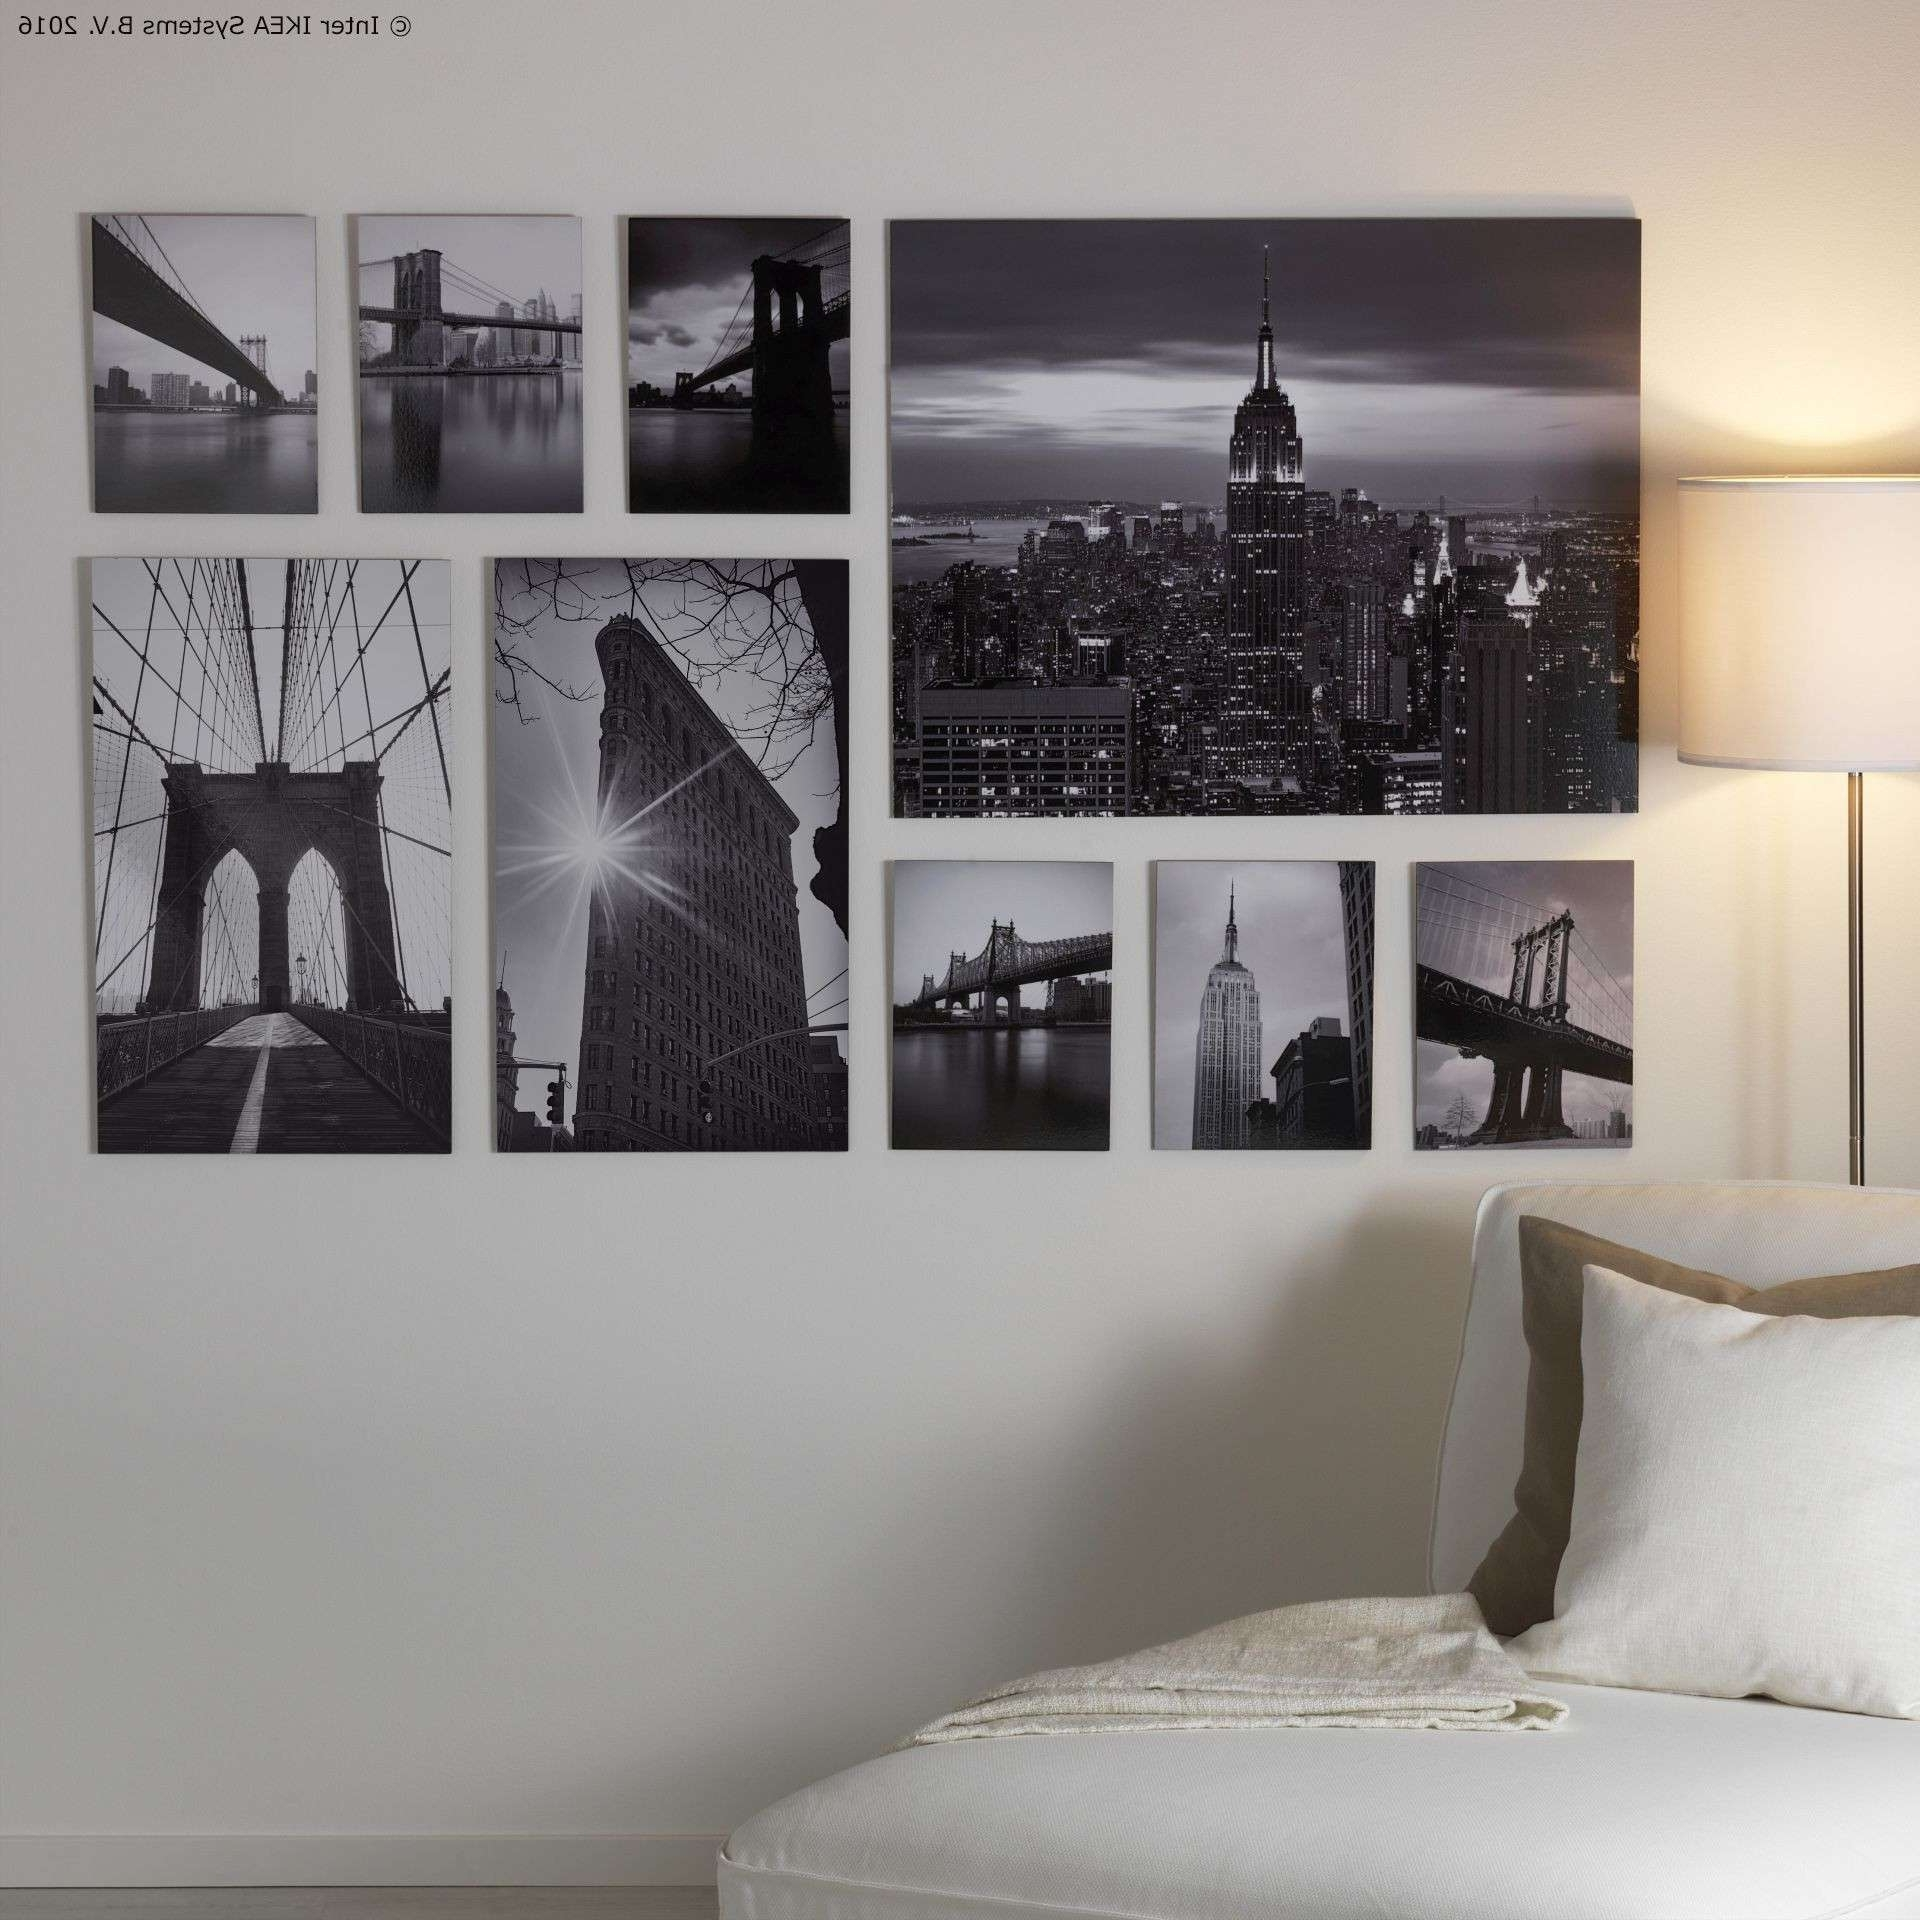 Most Popular Horizontal Wall Art With Regard To Big Wall Posters For Bedroom Elegant 36 New Horizontal Wall Art (View 9 of 15)